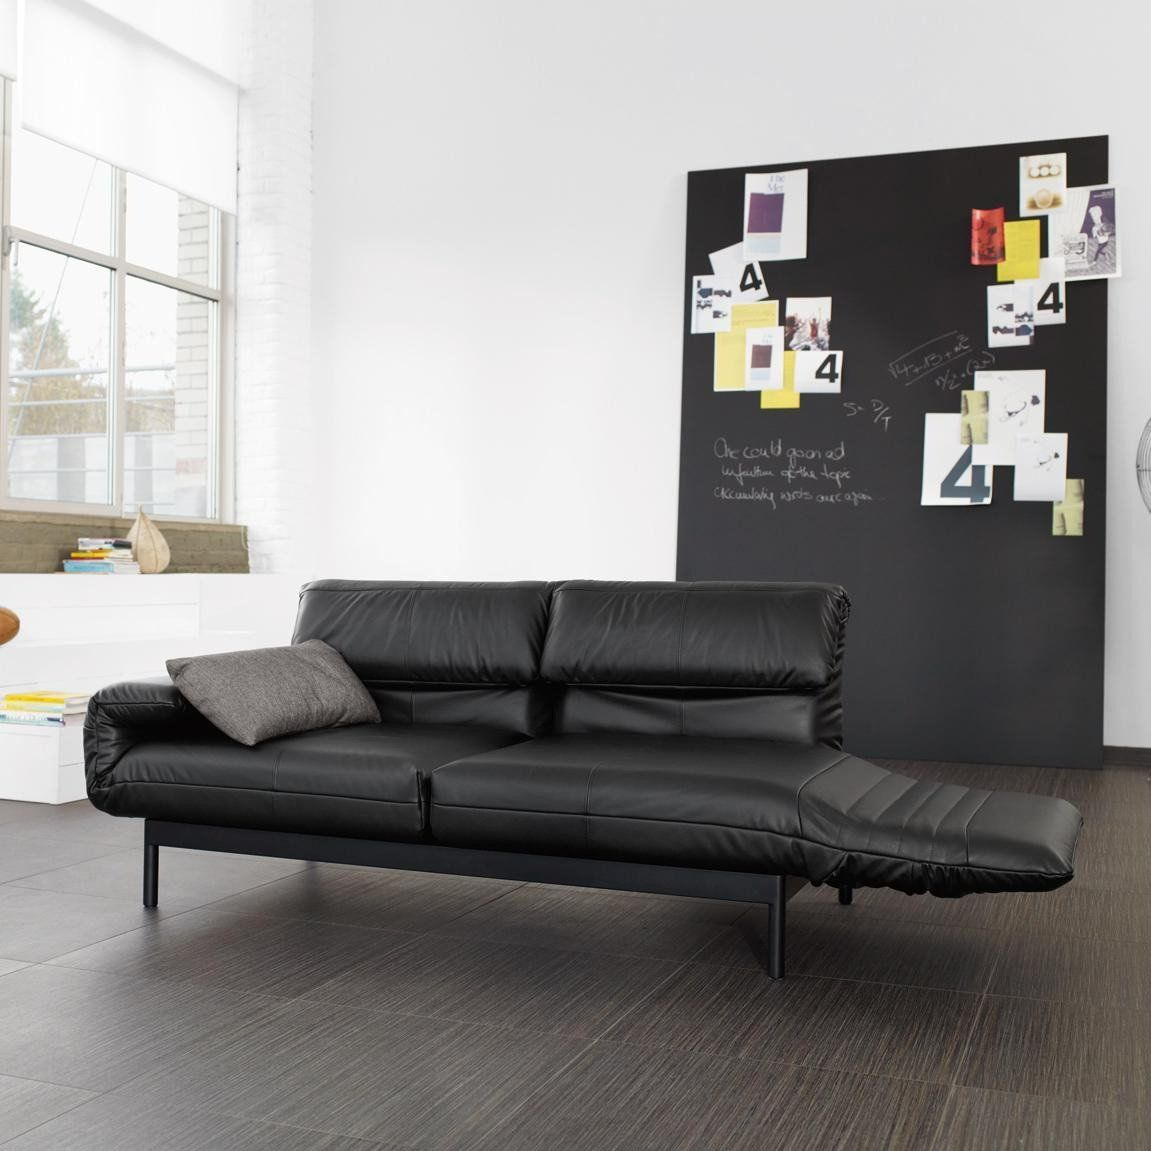 rolf benz sofa plura preise. Black Bedroom Furniture Sets. Home Design Ideas